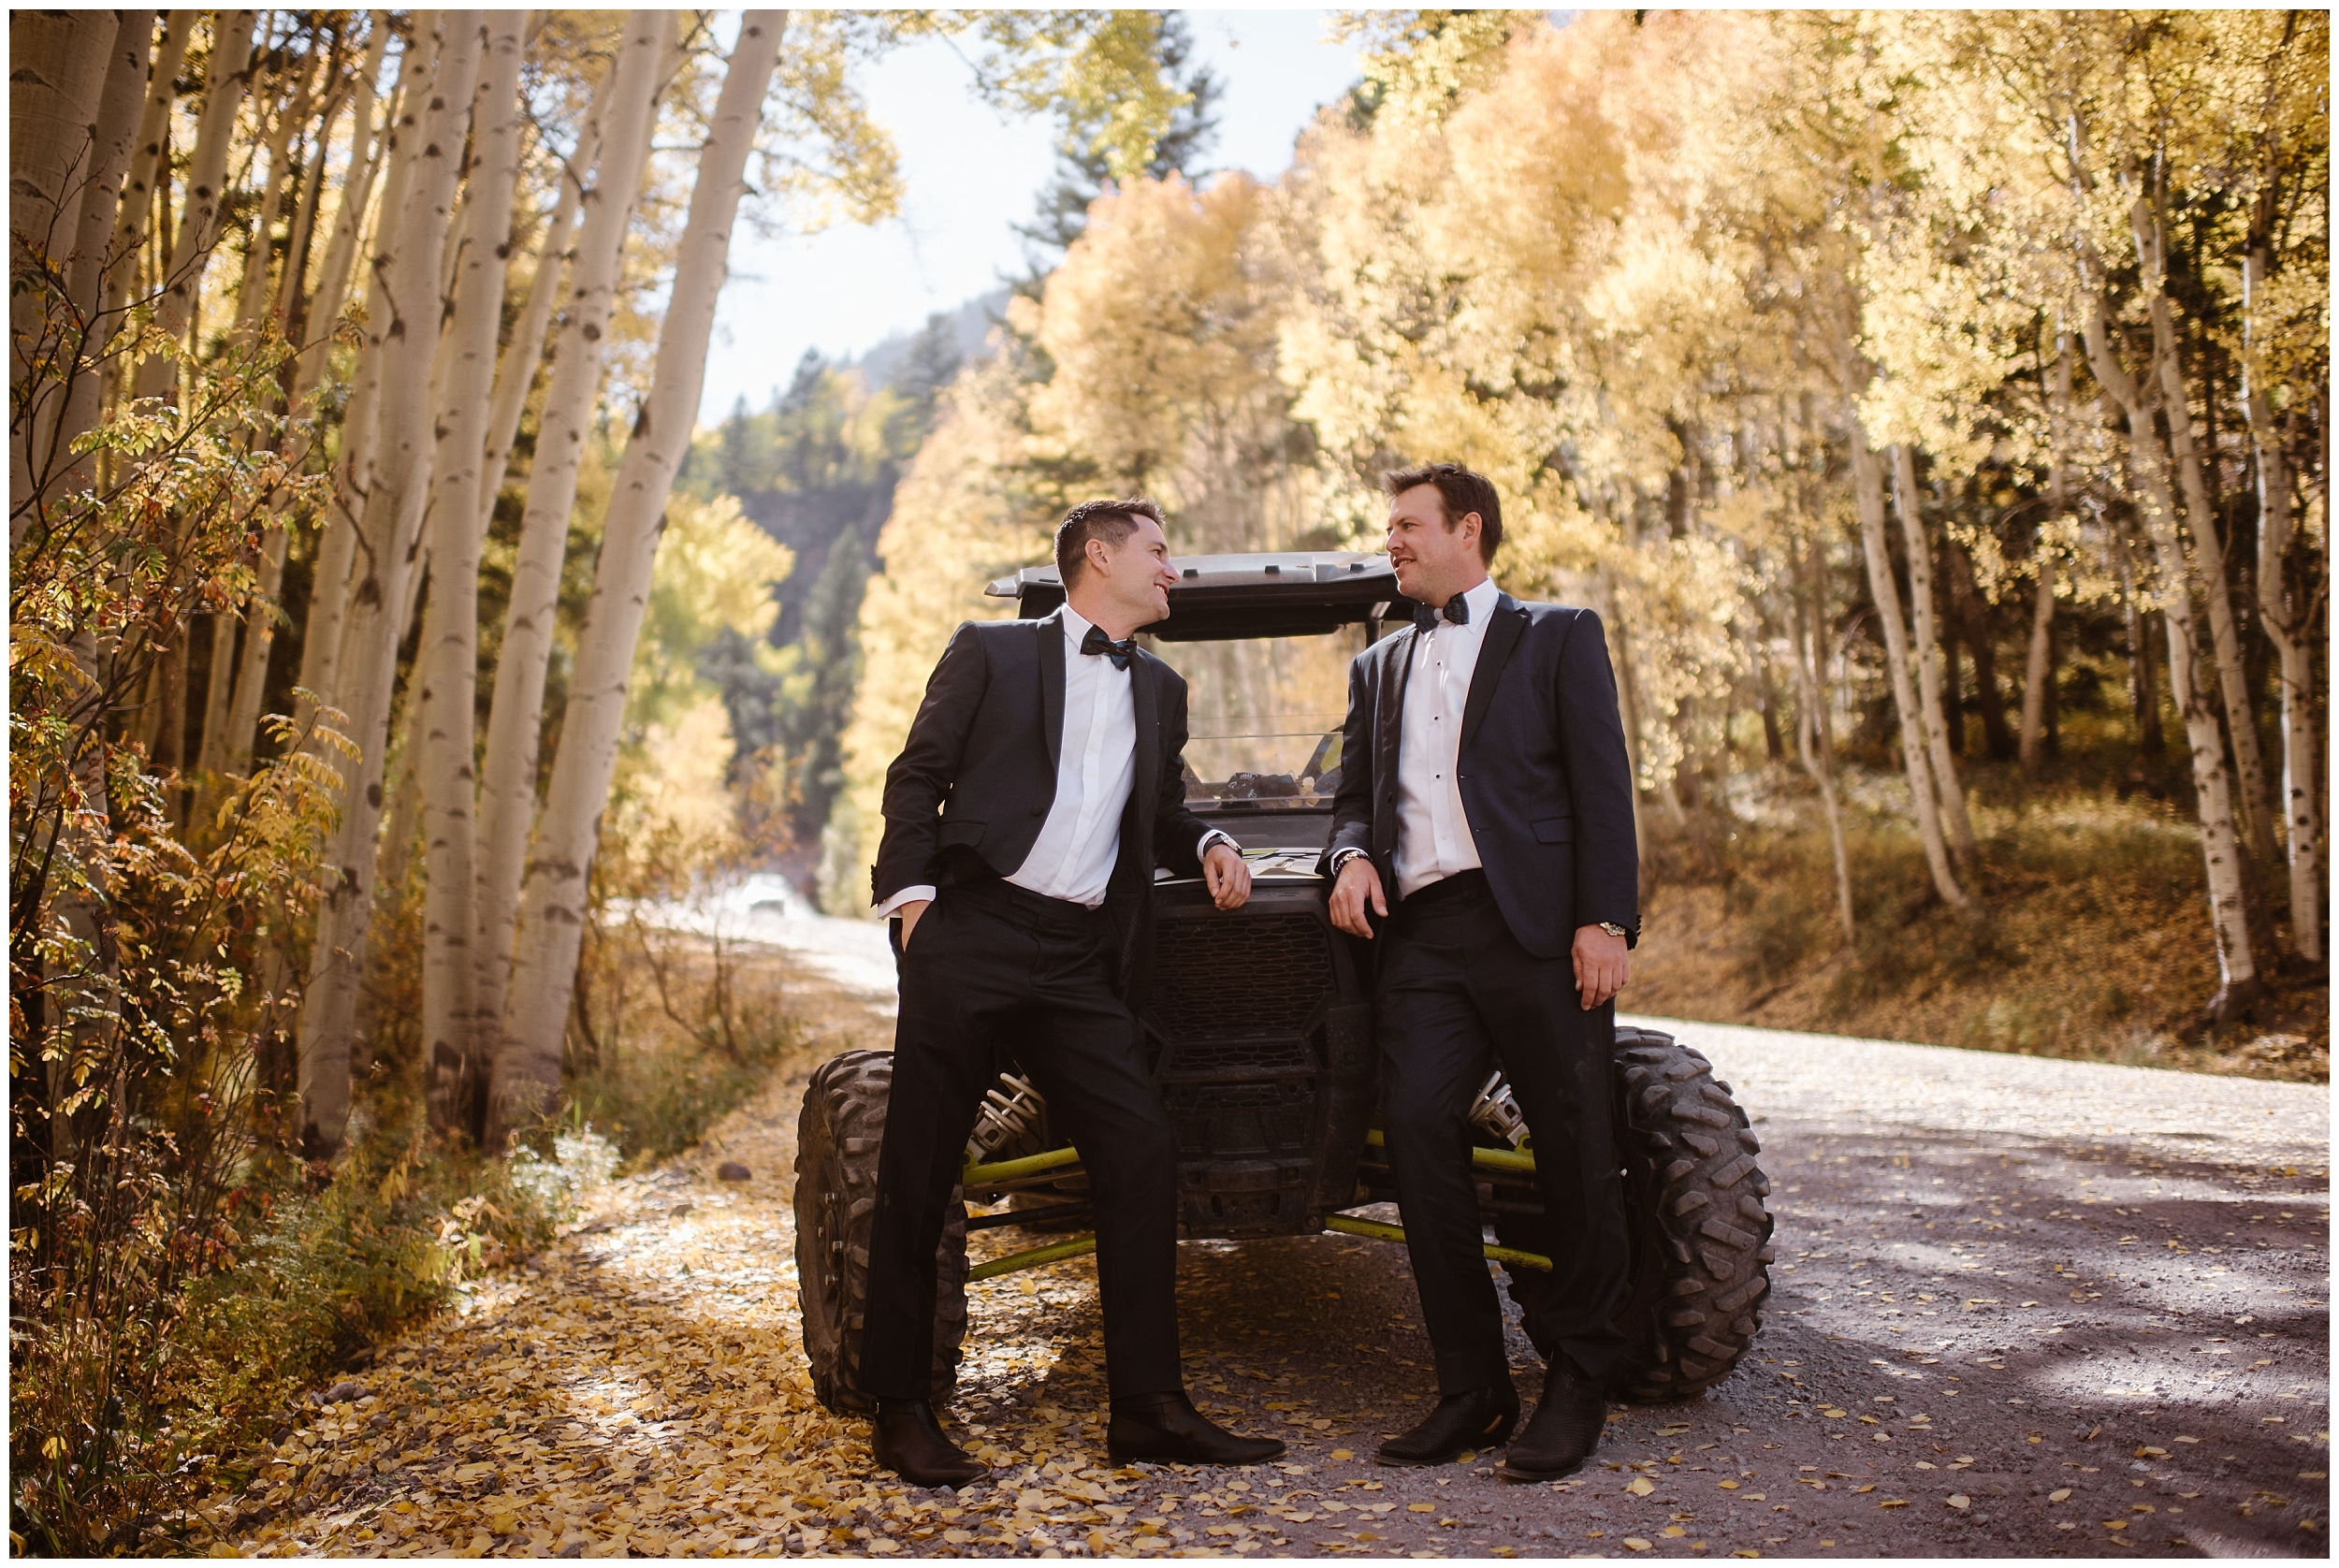 The two grooms, Brian and Ernie, lean up against their off-road vehicle that they parked in the middle of a beautiful, golden aspen grove. The two grooms are dressed in their suits and ready for their elopement ceremony, which they'll take the off-road vehicles to get to for their 4x4 wedding.